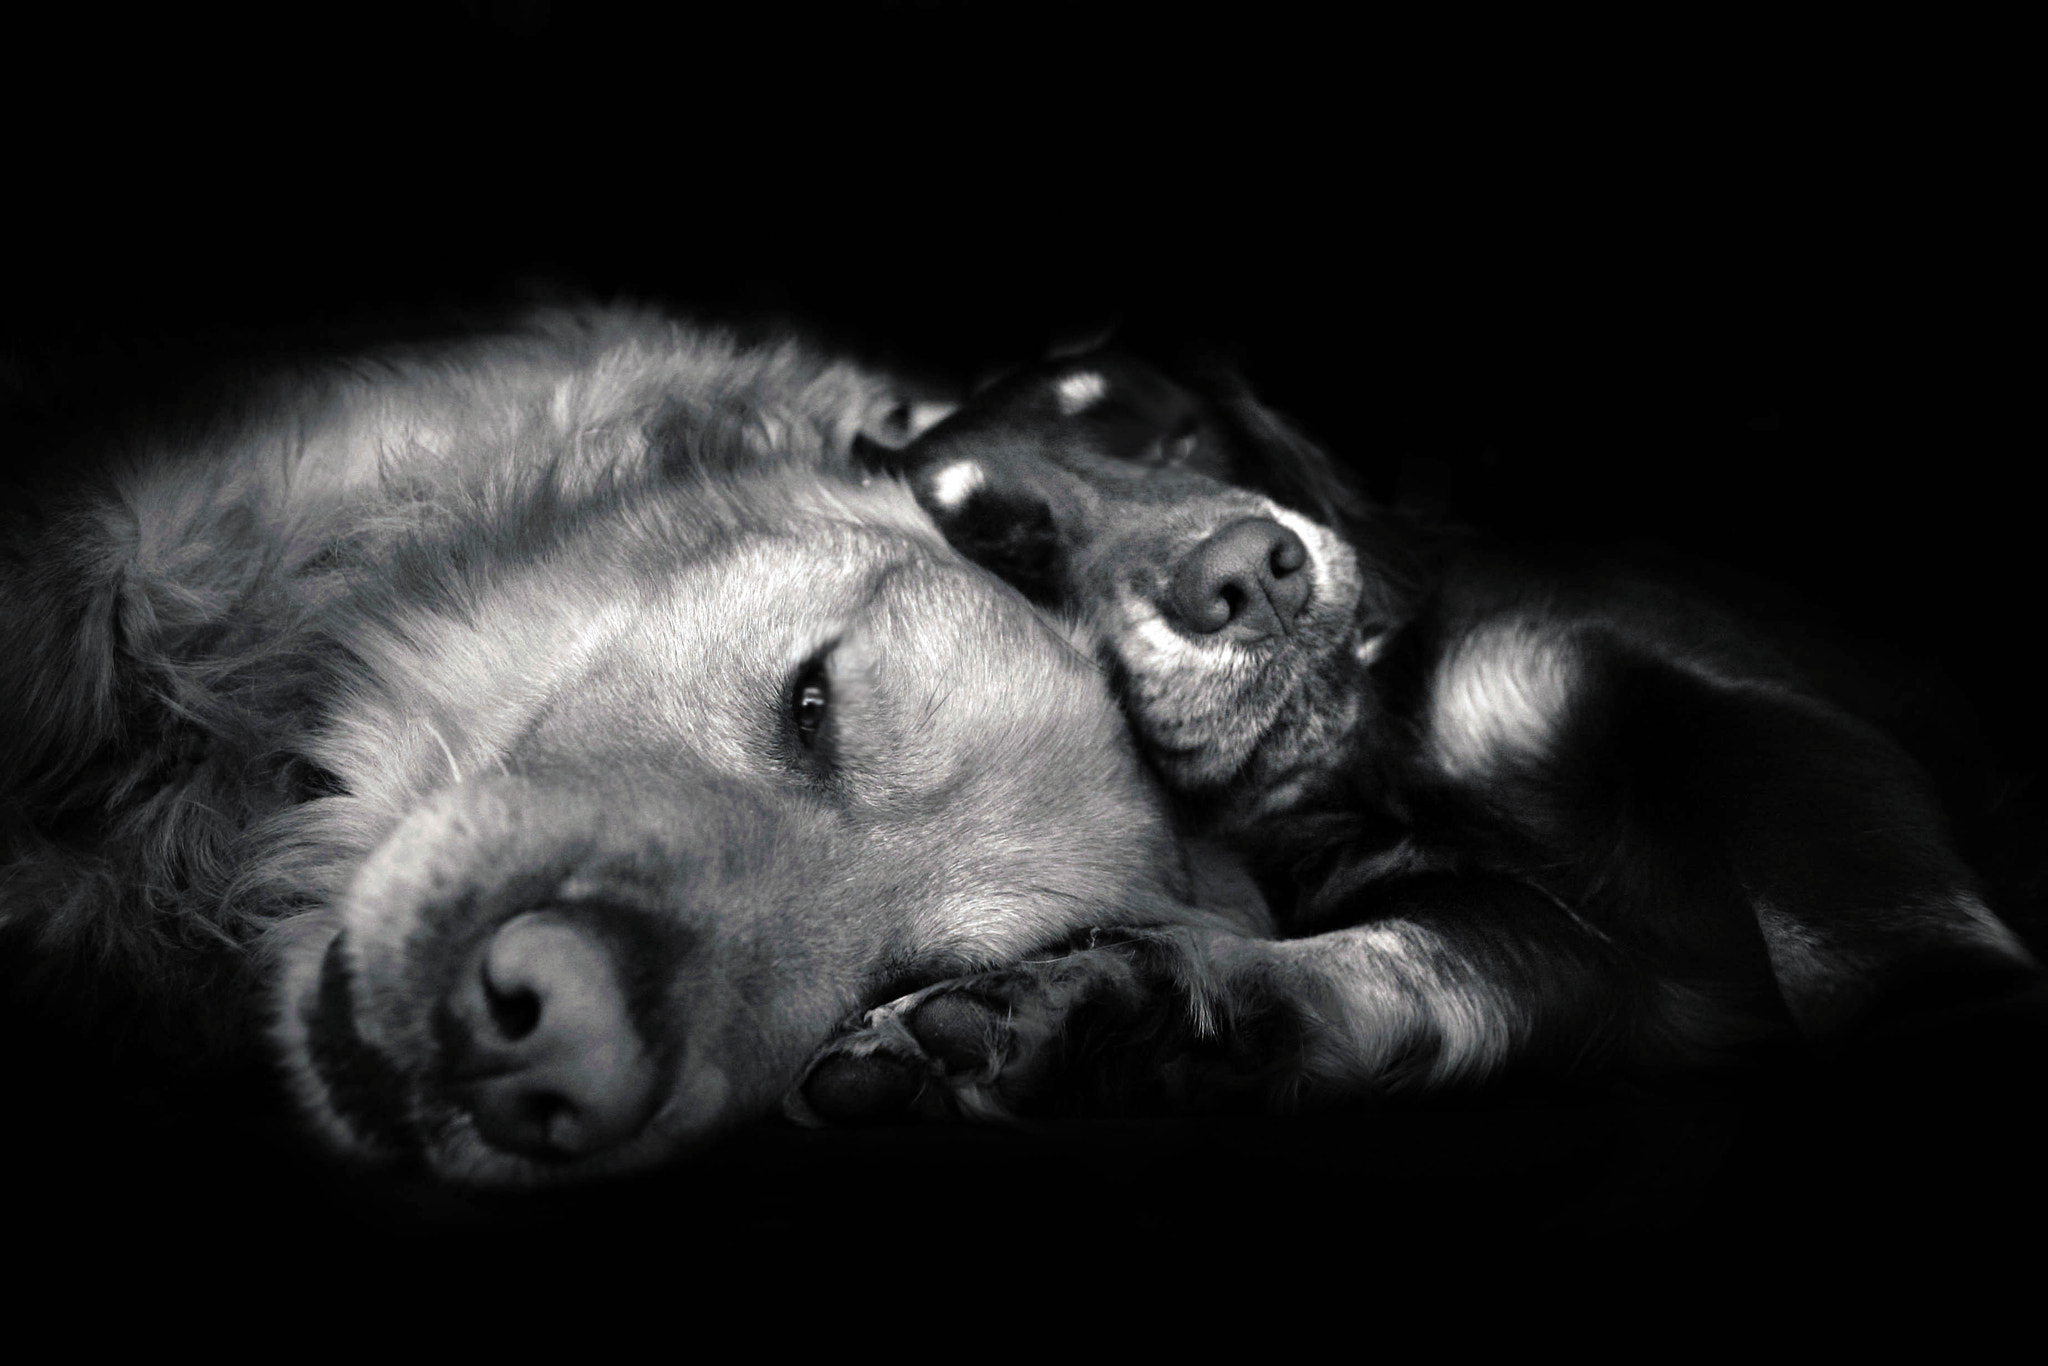 Photograph my puppies by Jessica Trinh on 500px